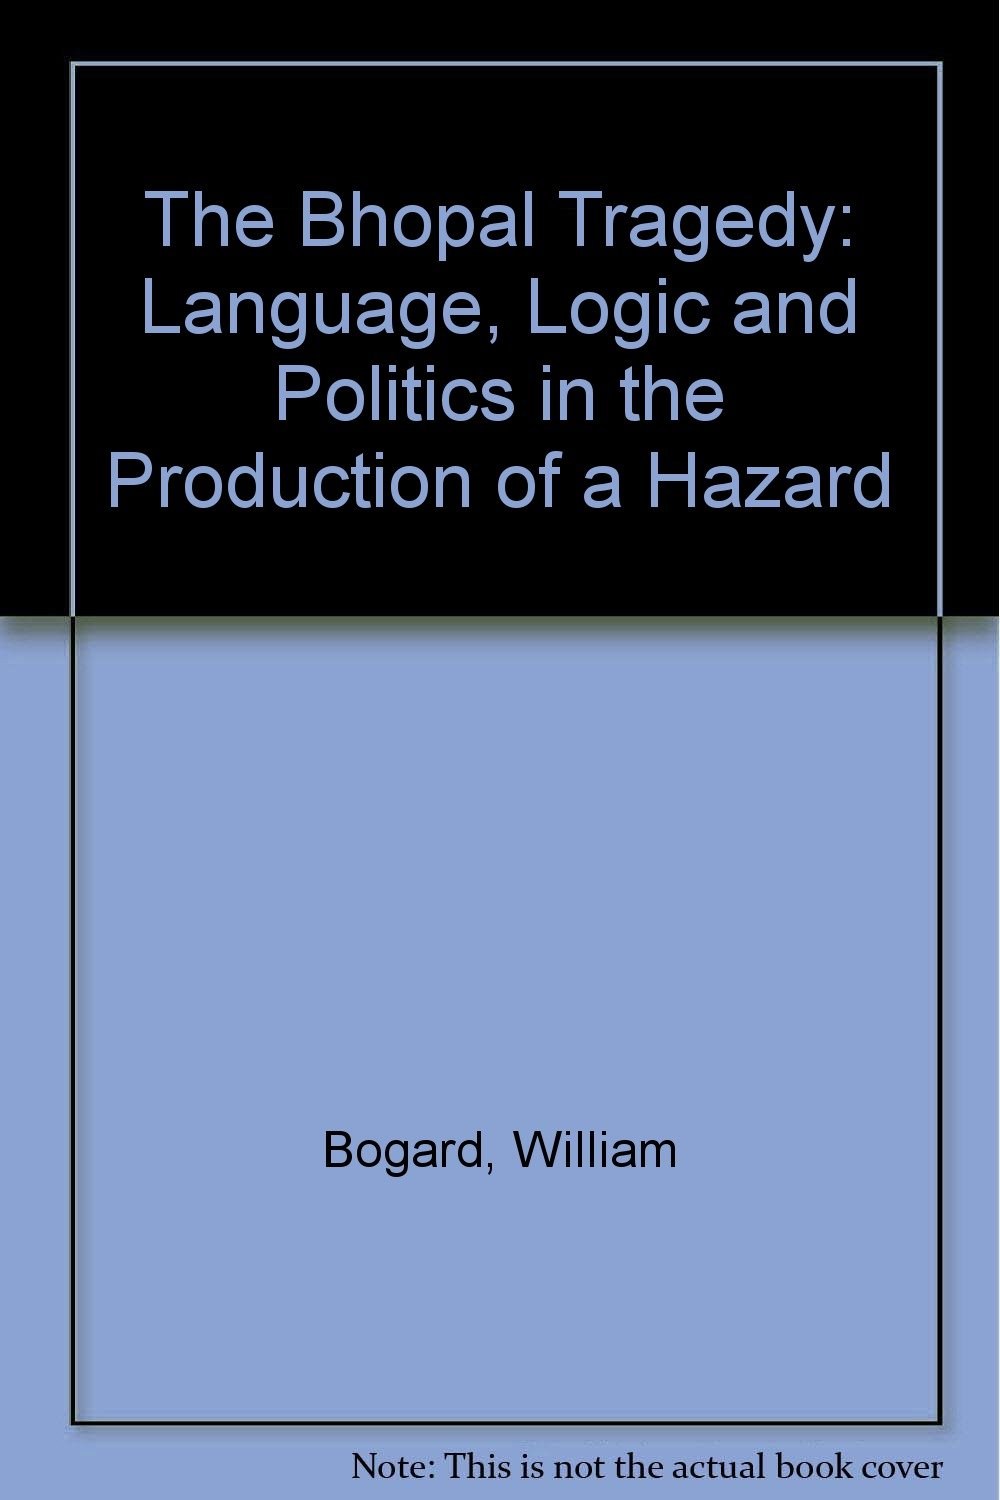 Bhopal Tragedy: Language, Logic, and Politics in the Production of a Hazard, Bogard, William